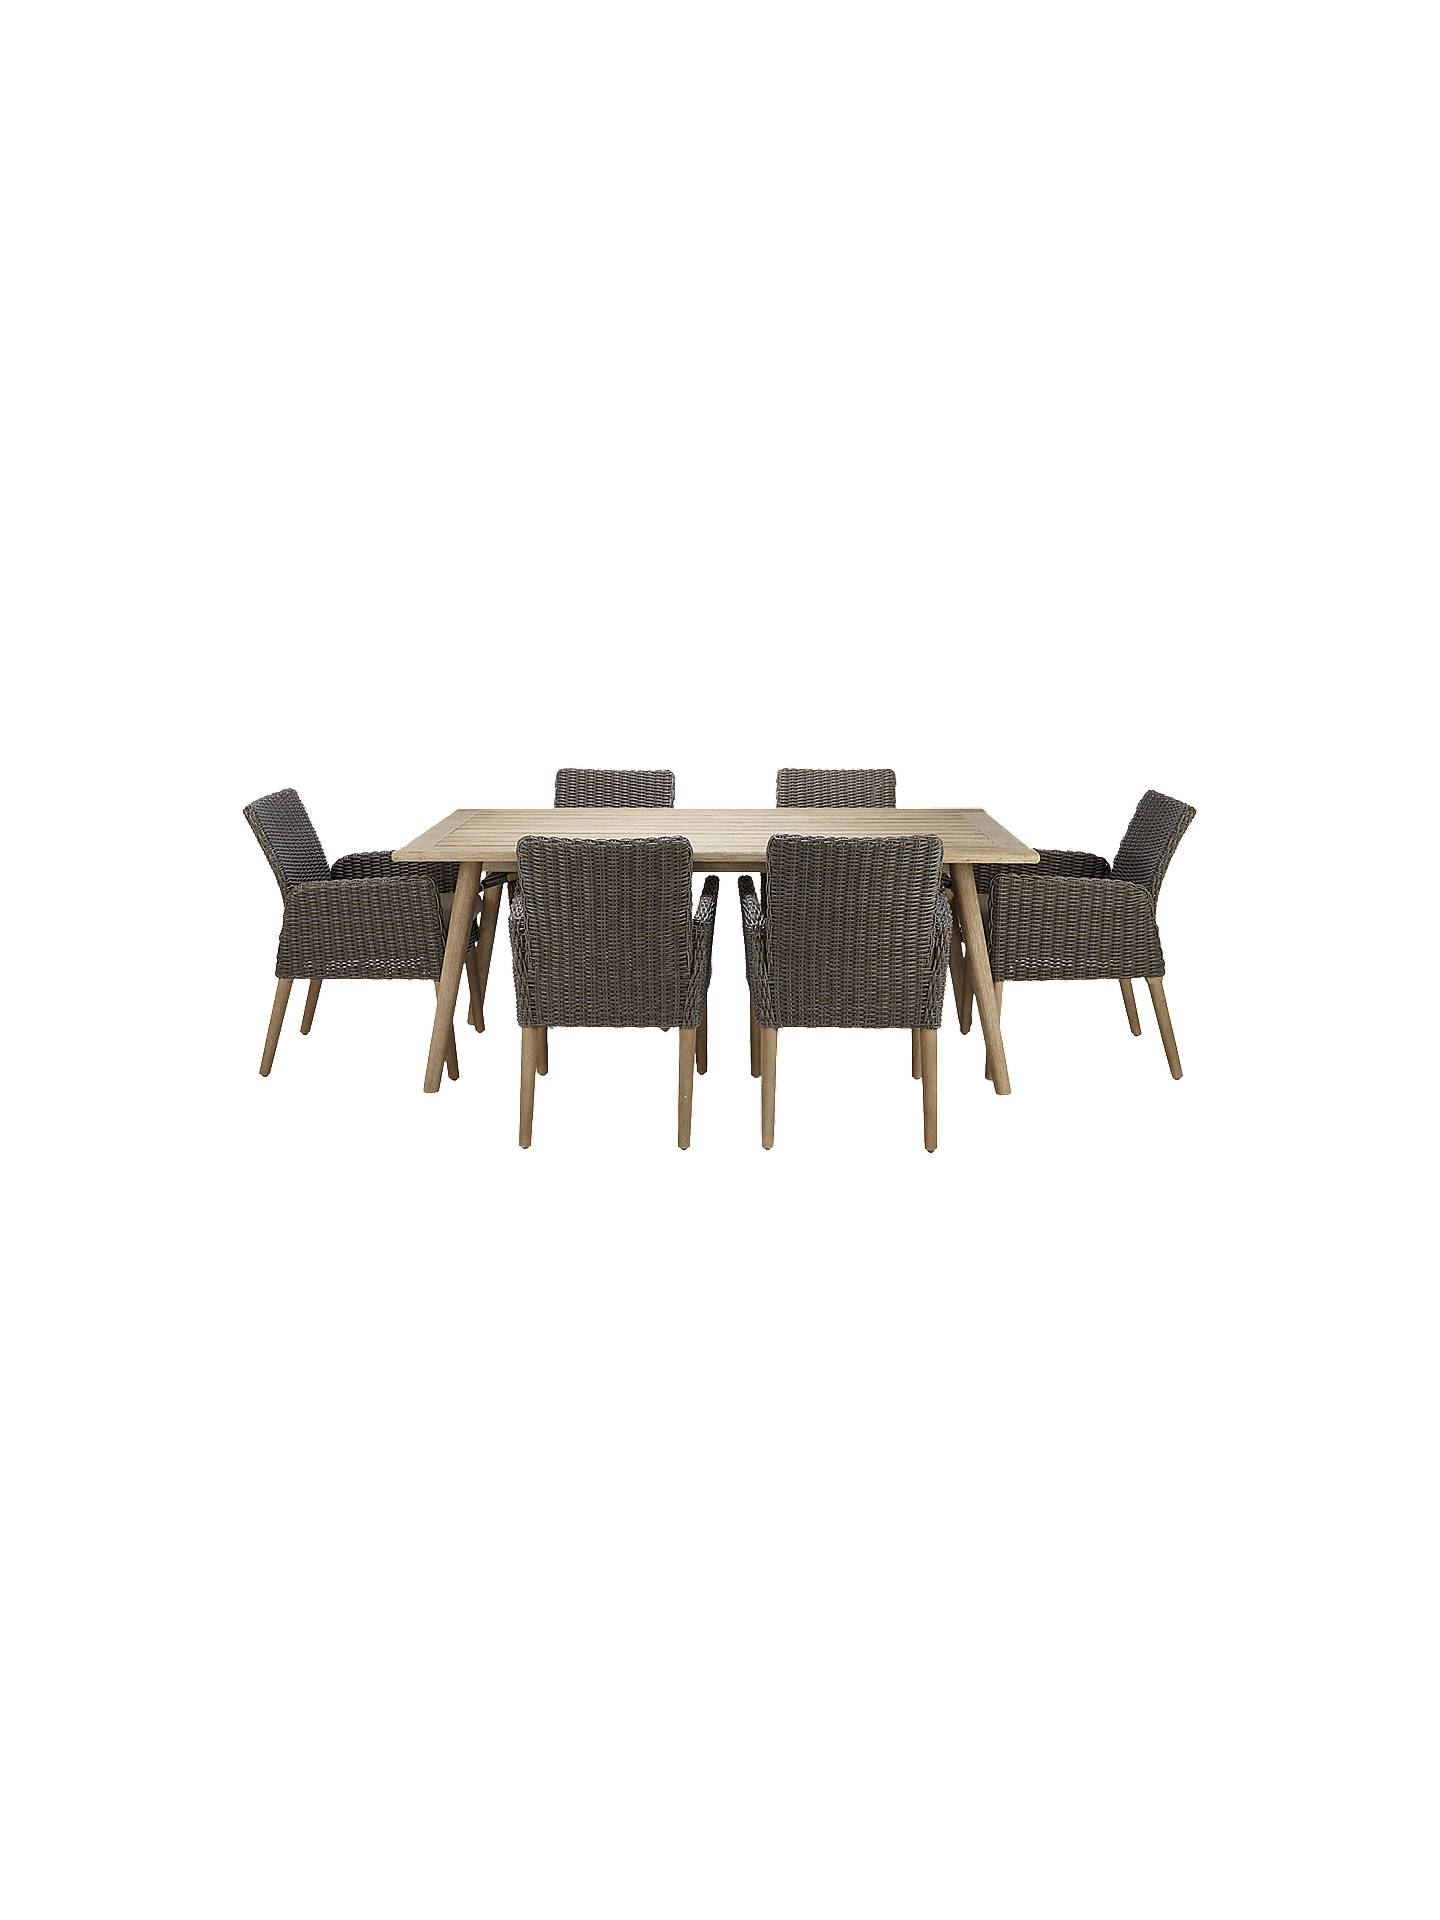 Buyjohn lewis eden 6 seater outdoor dining table and chairs set fsc certified